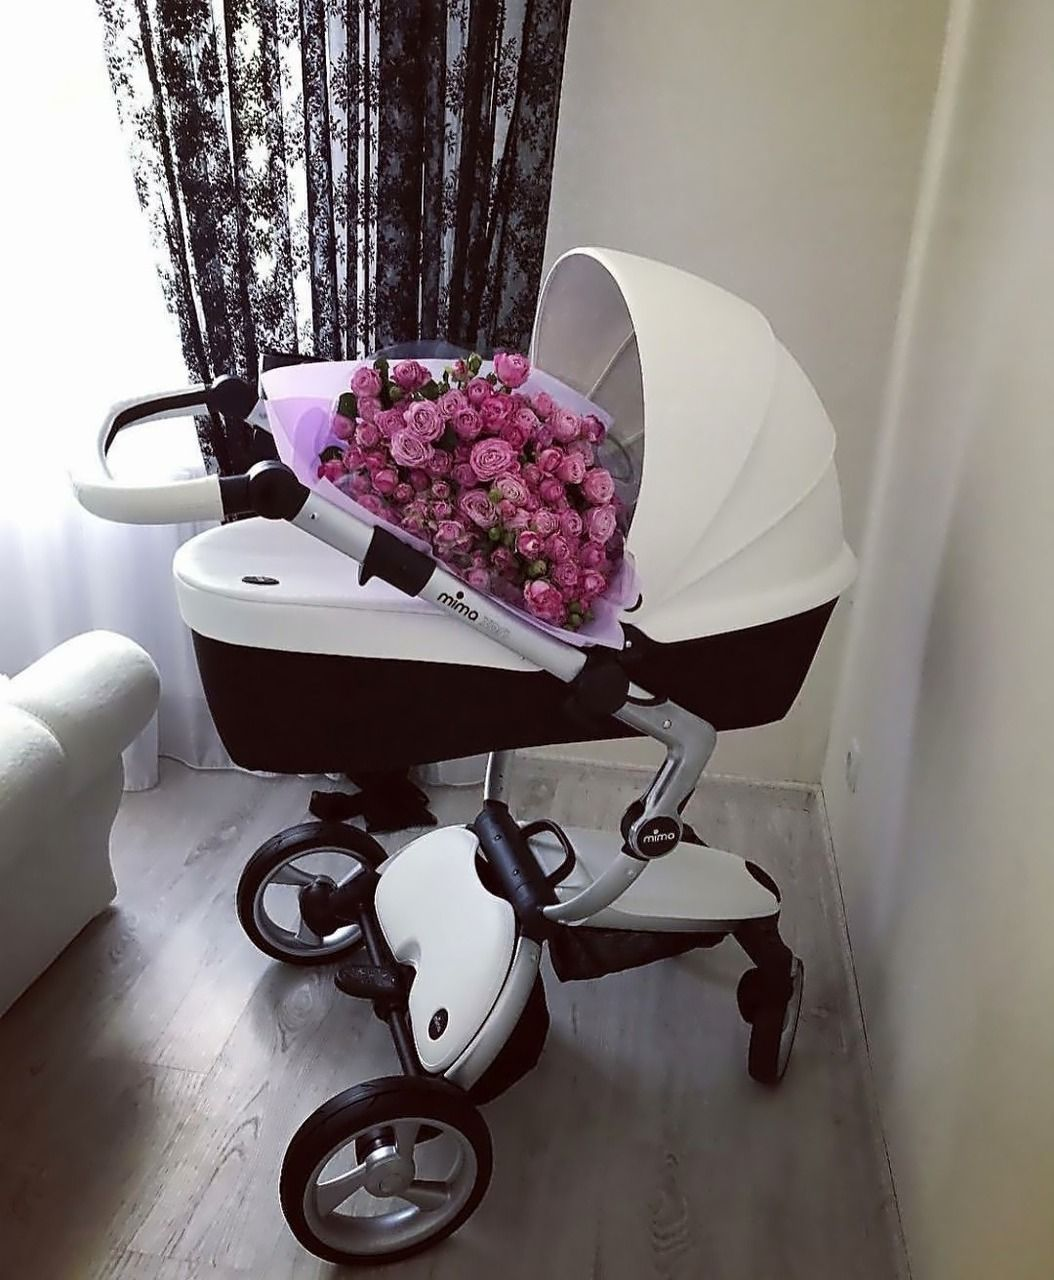 Pin by 𝓟𝓻𝓲𝓷𝓬𝓮𝓼𝓼 on Nursery Ideas (With images) Baby